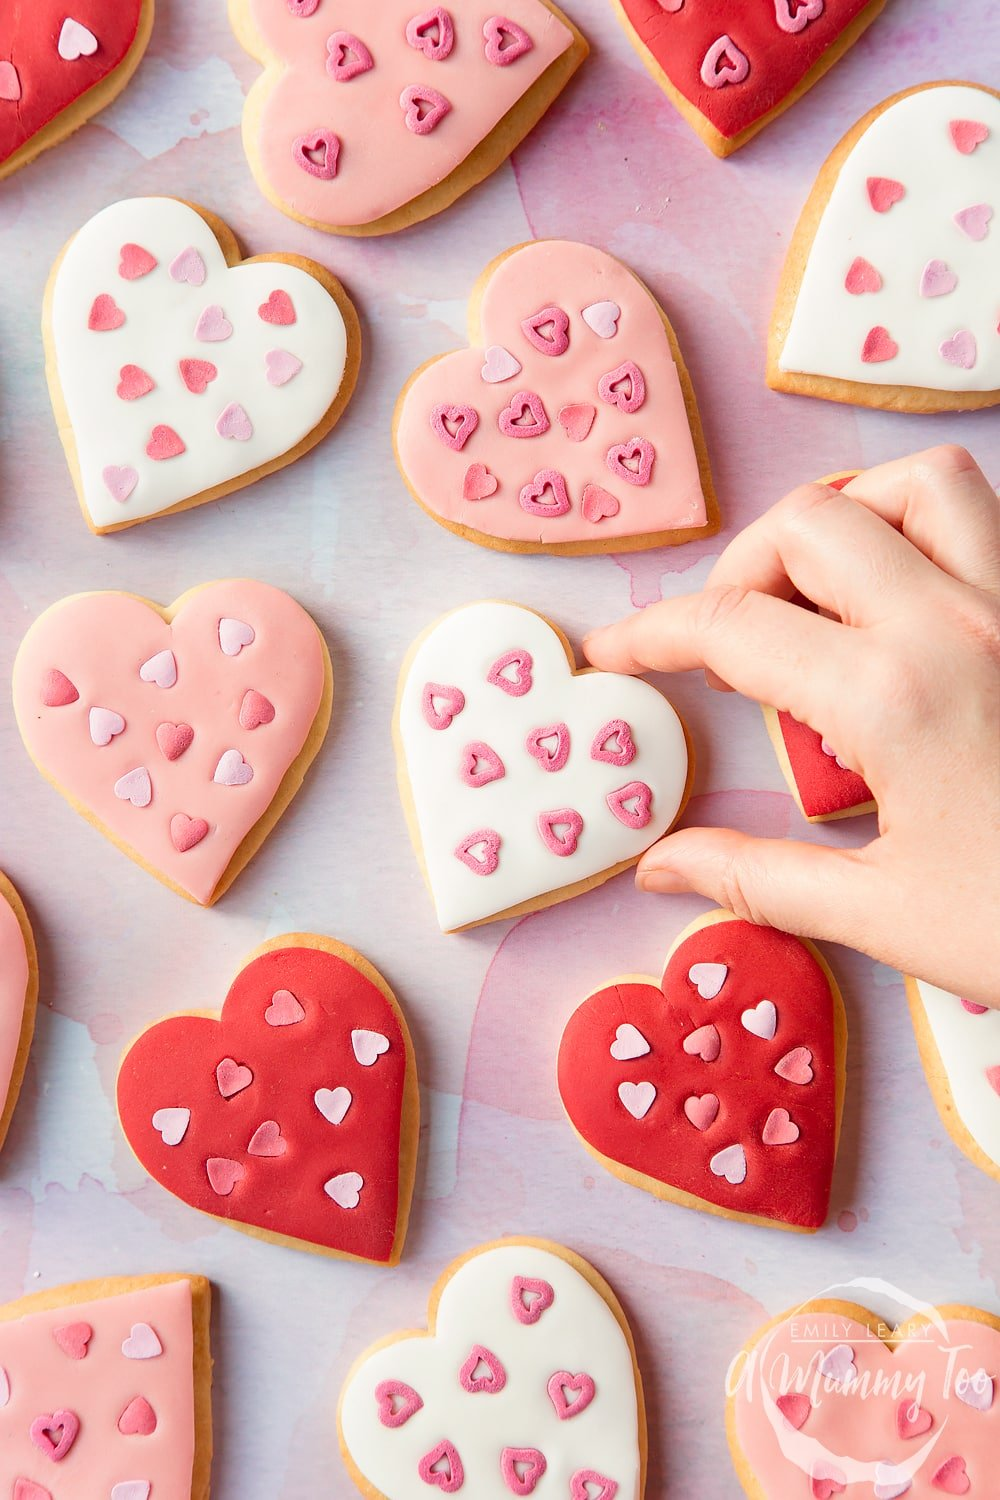 Overhead shot of a hand holding a Heart biscuit with a mummy too logo in the lower-right corner